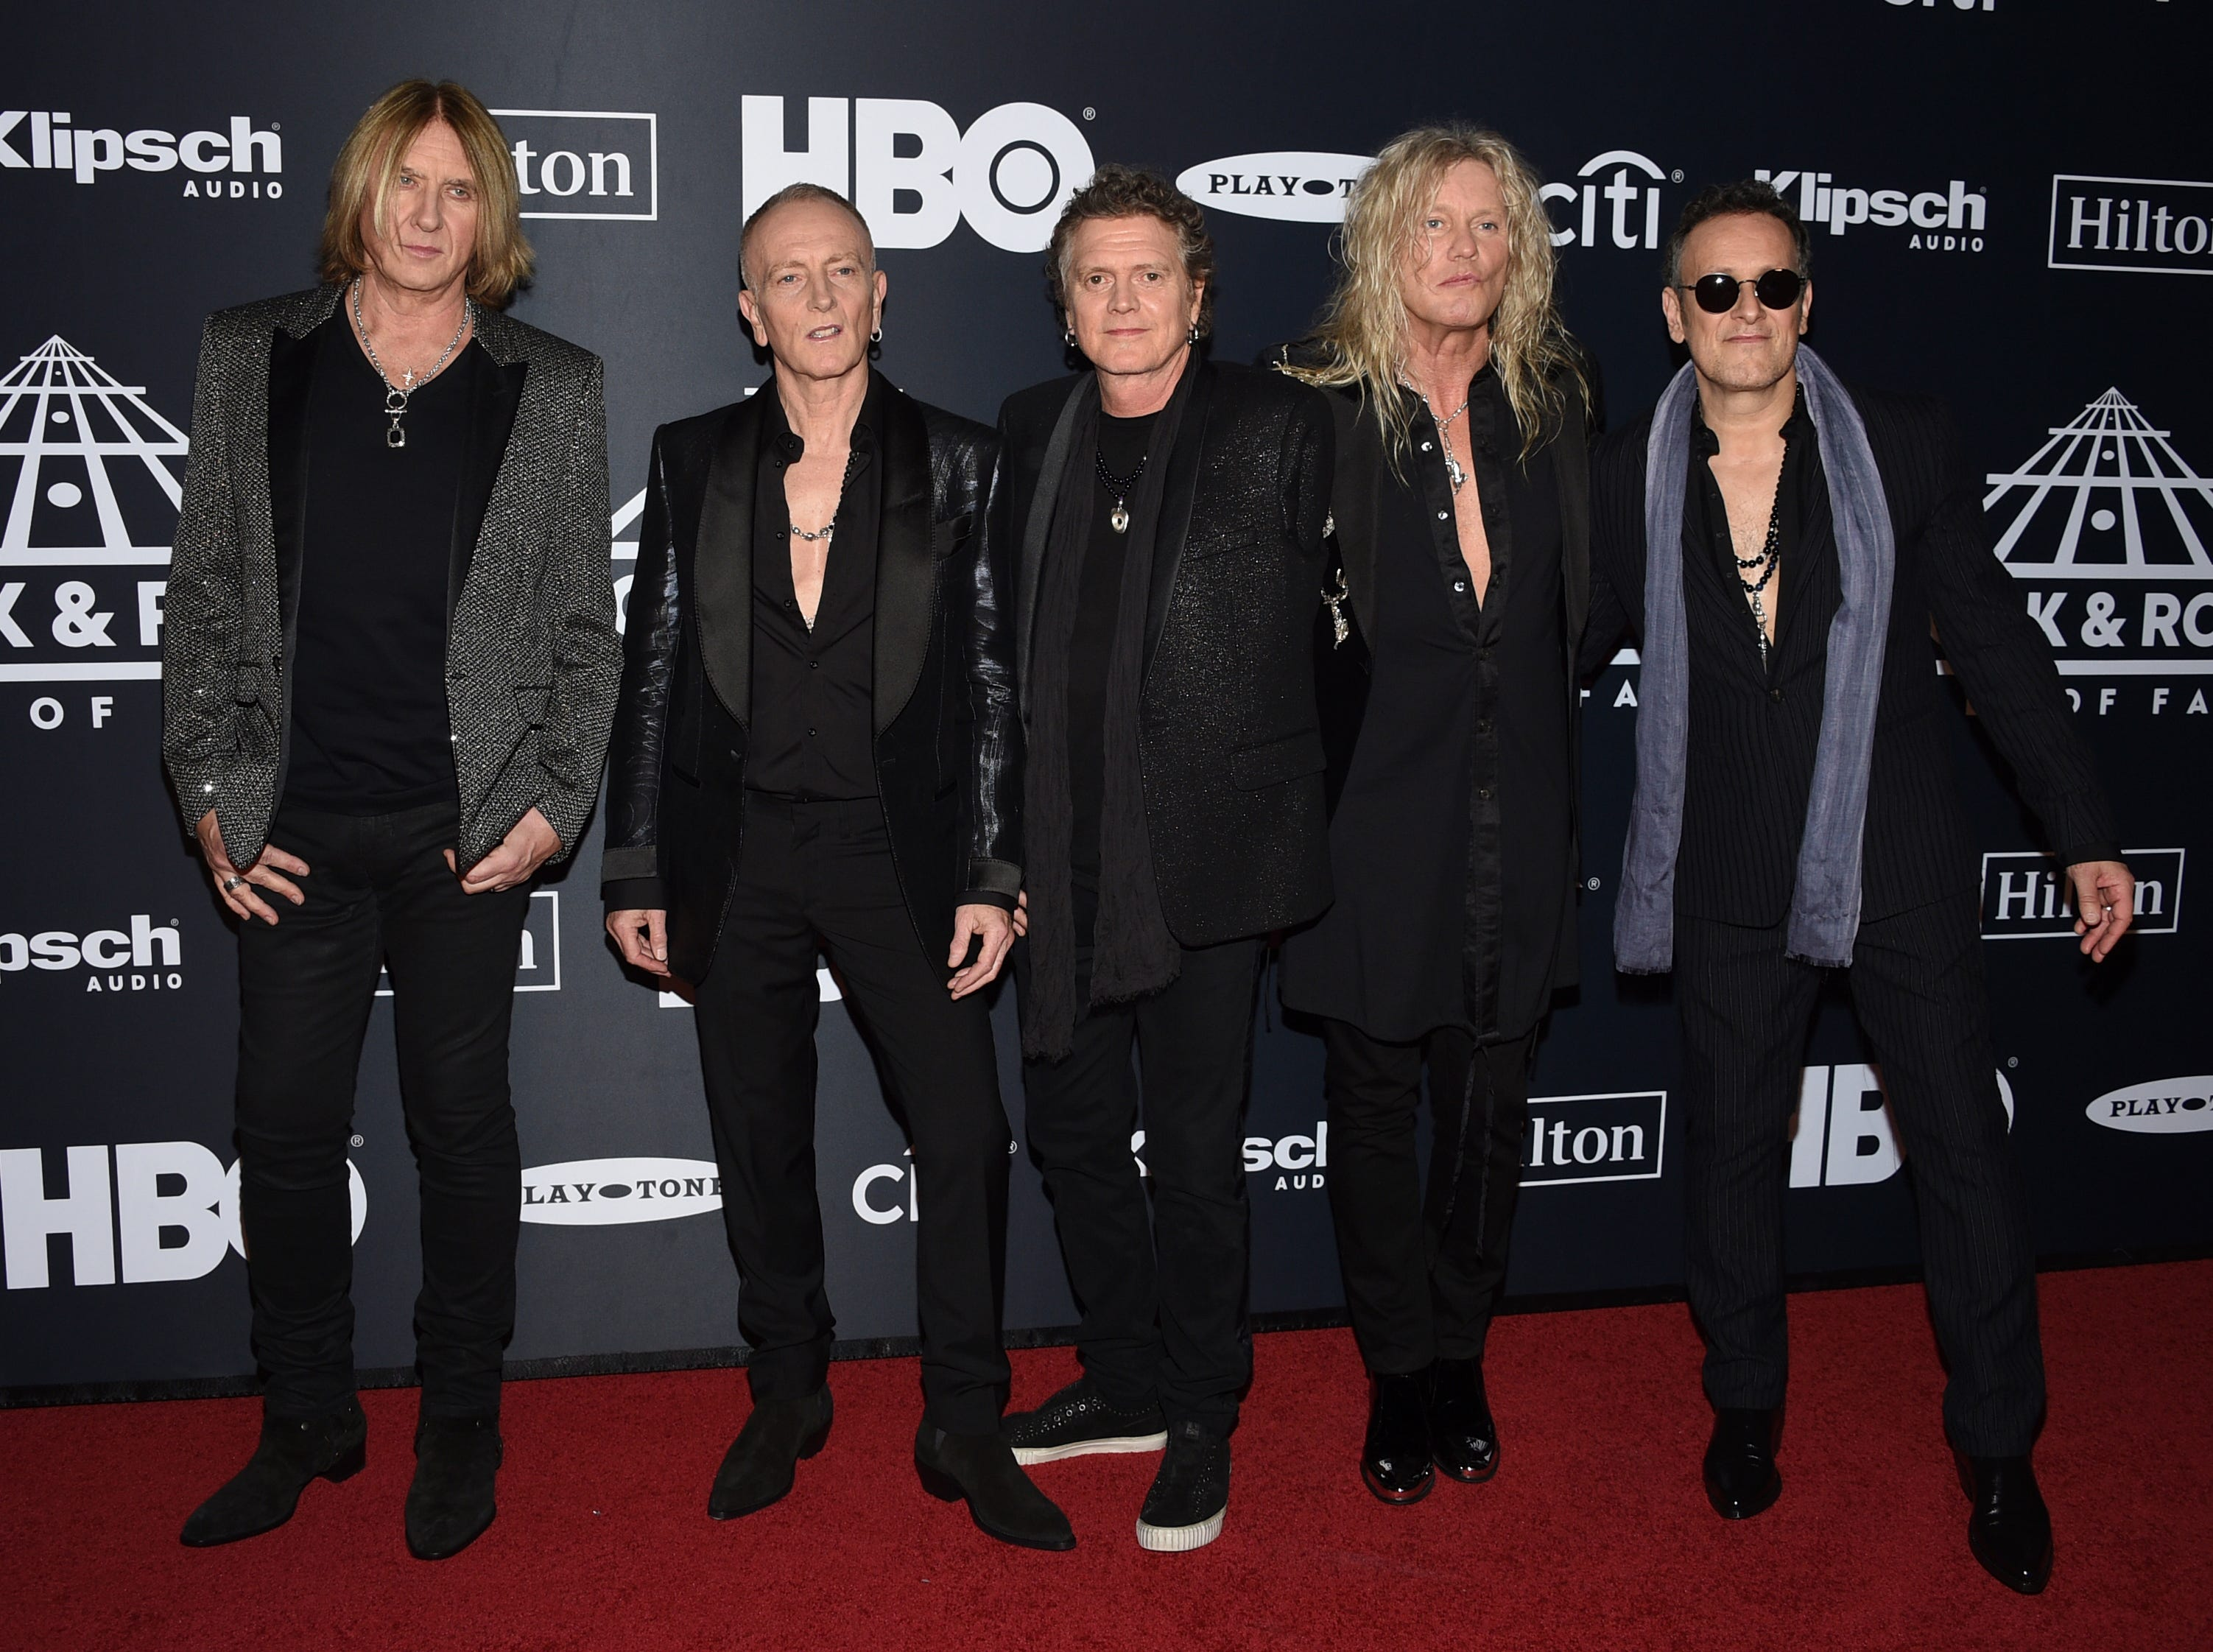 Joe Elliott, from left, Phil Collen, Rick Allen, Rick Savage and Vivian Campbell, of Def Leppard, arrive at the Rock & Roll Hall of Fame induction ceremony at the Barclays Center on Friday, March 29, 2019, in New York. (Photo by Evan Agostini/Invision/AP) ORG XMIT: NYPM116